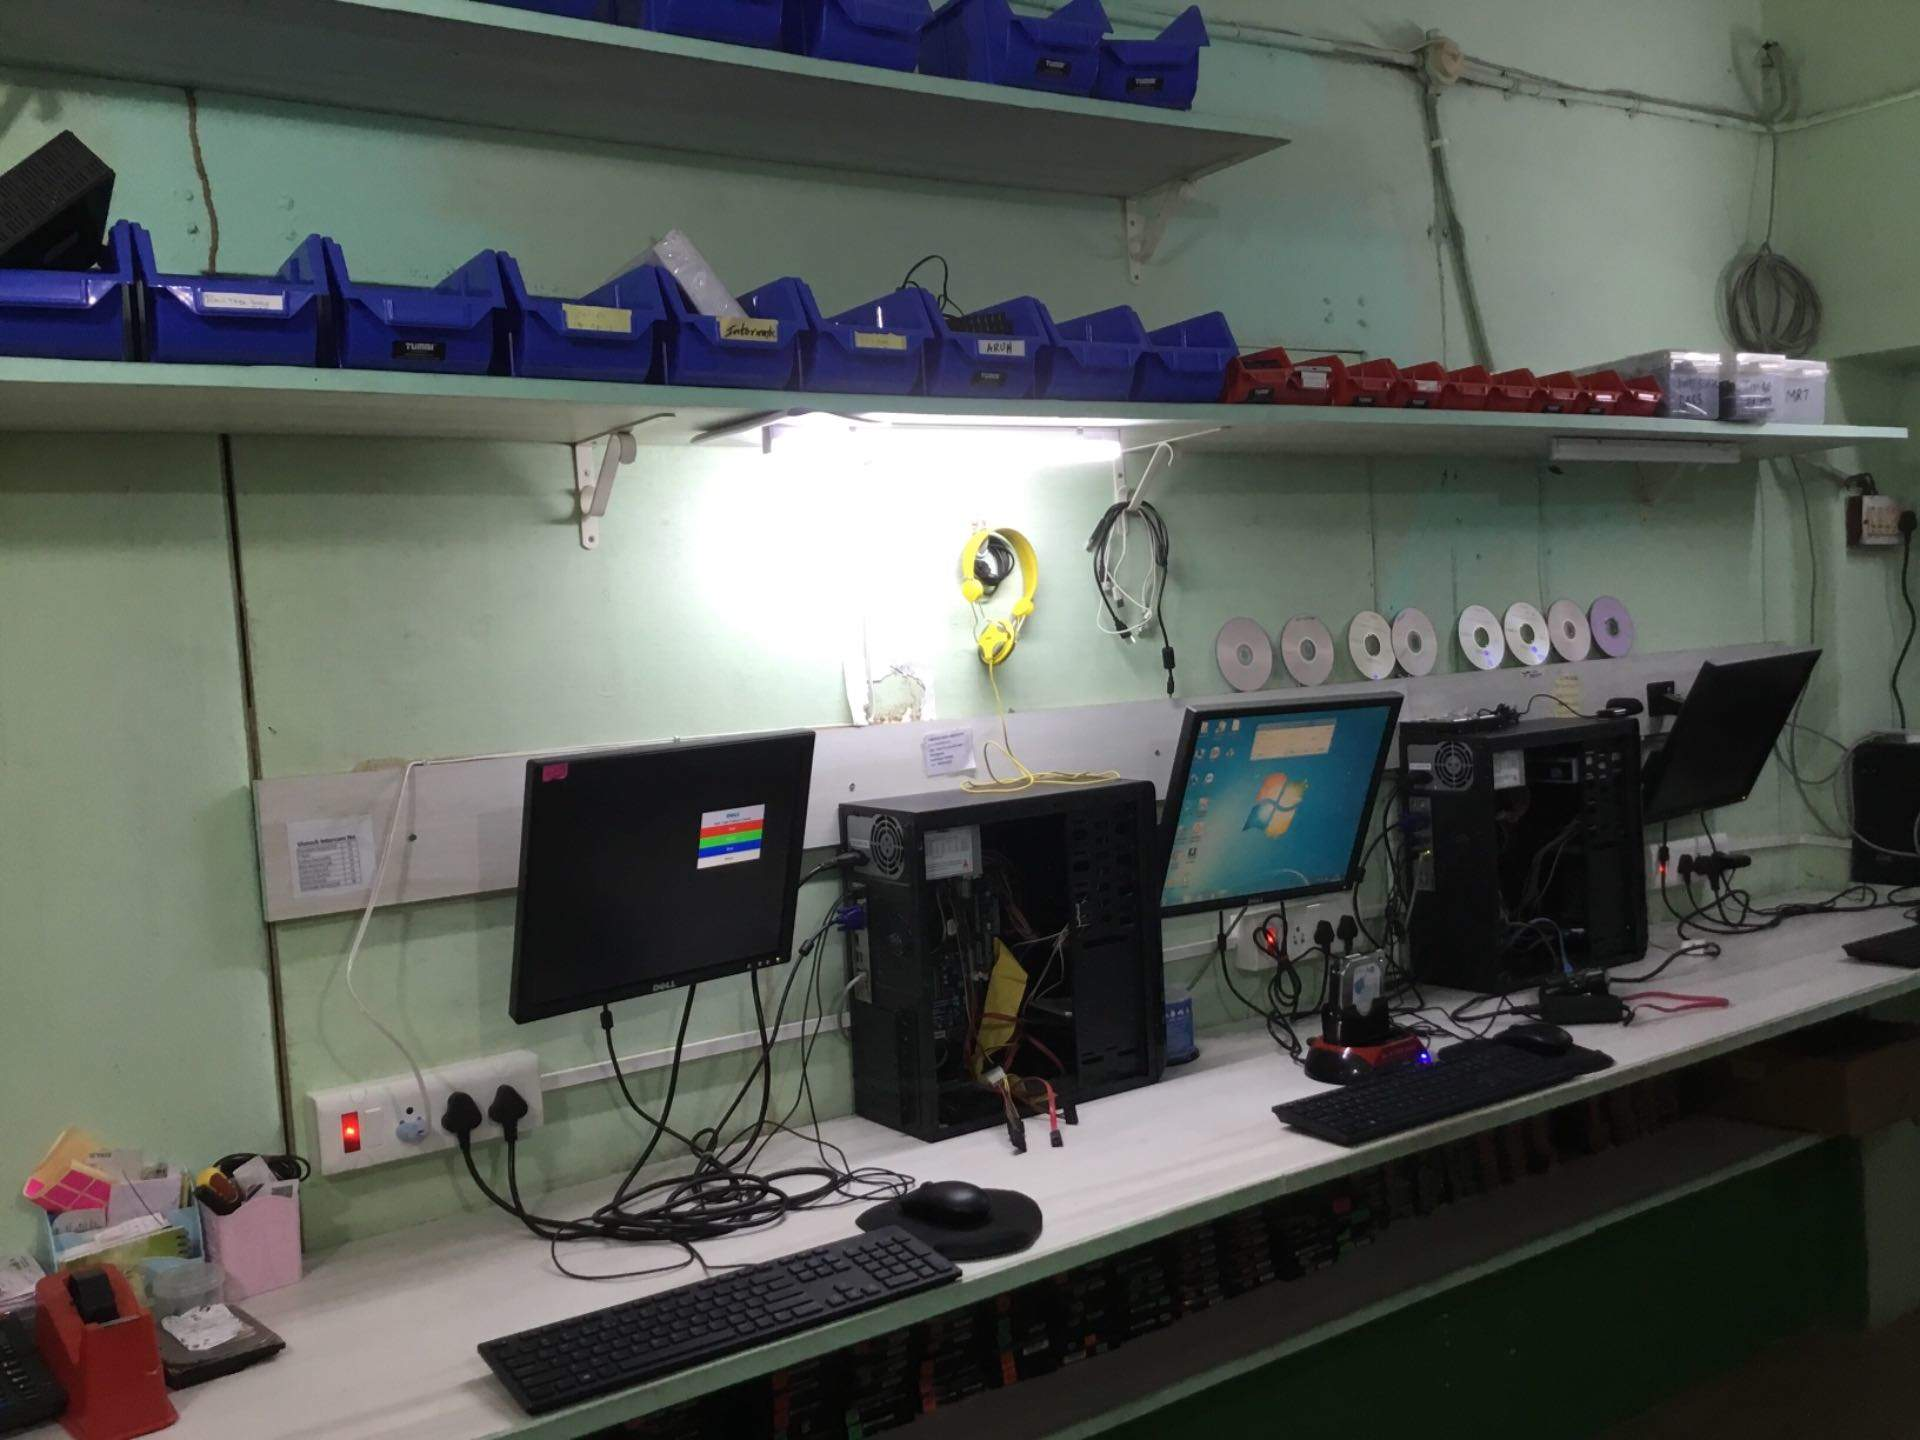 Lappy Care offers the Best Laptop Repair at Home in Indiranagar